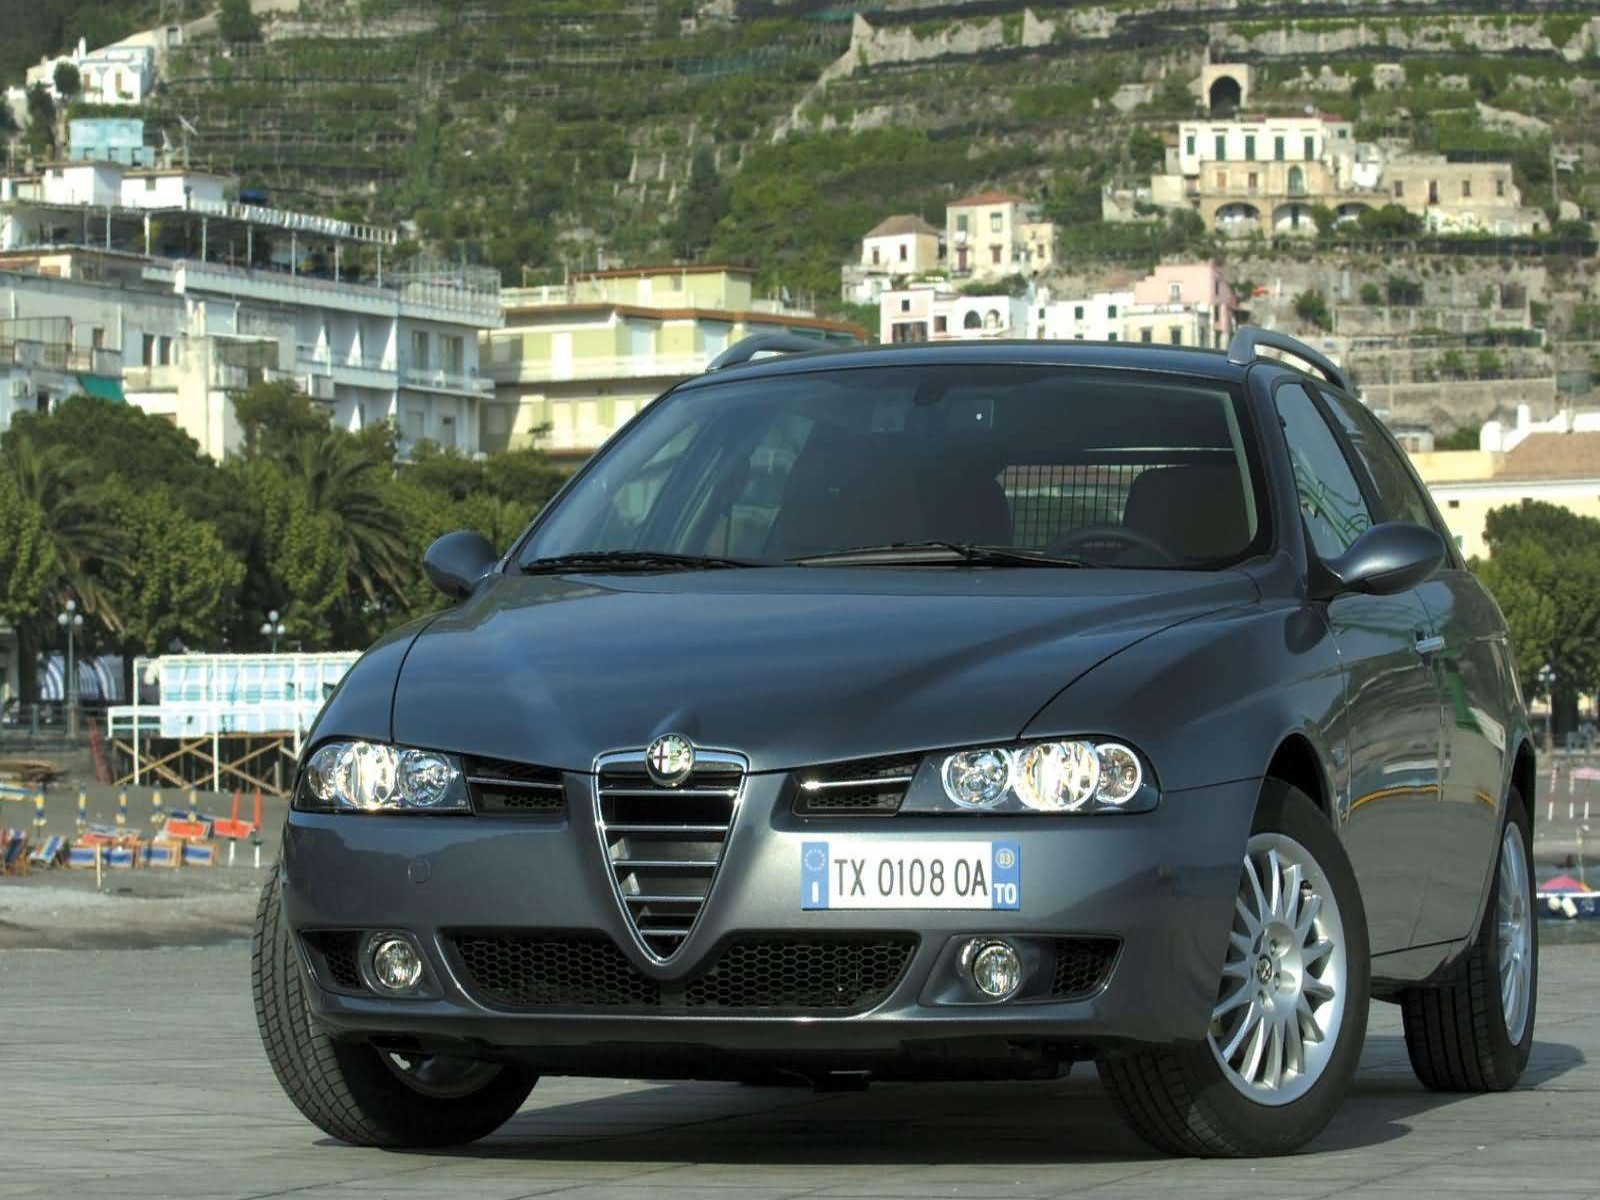 alfa romeo 156 sportwagon 2 0 jtd 2003. Black Bedroom Furniture Sets. Home Design Ideas